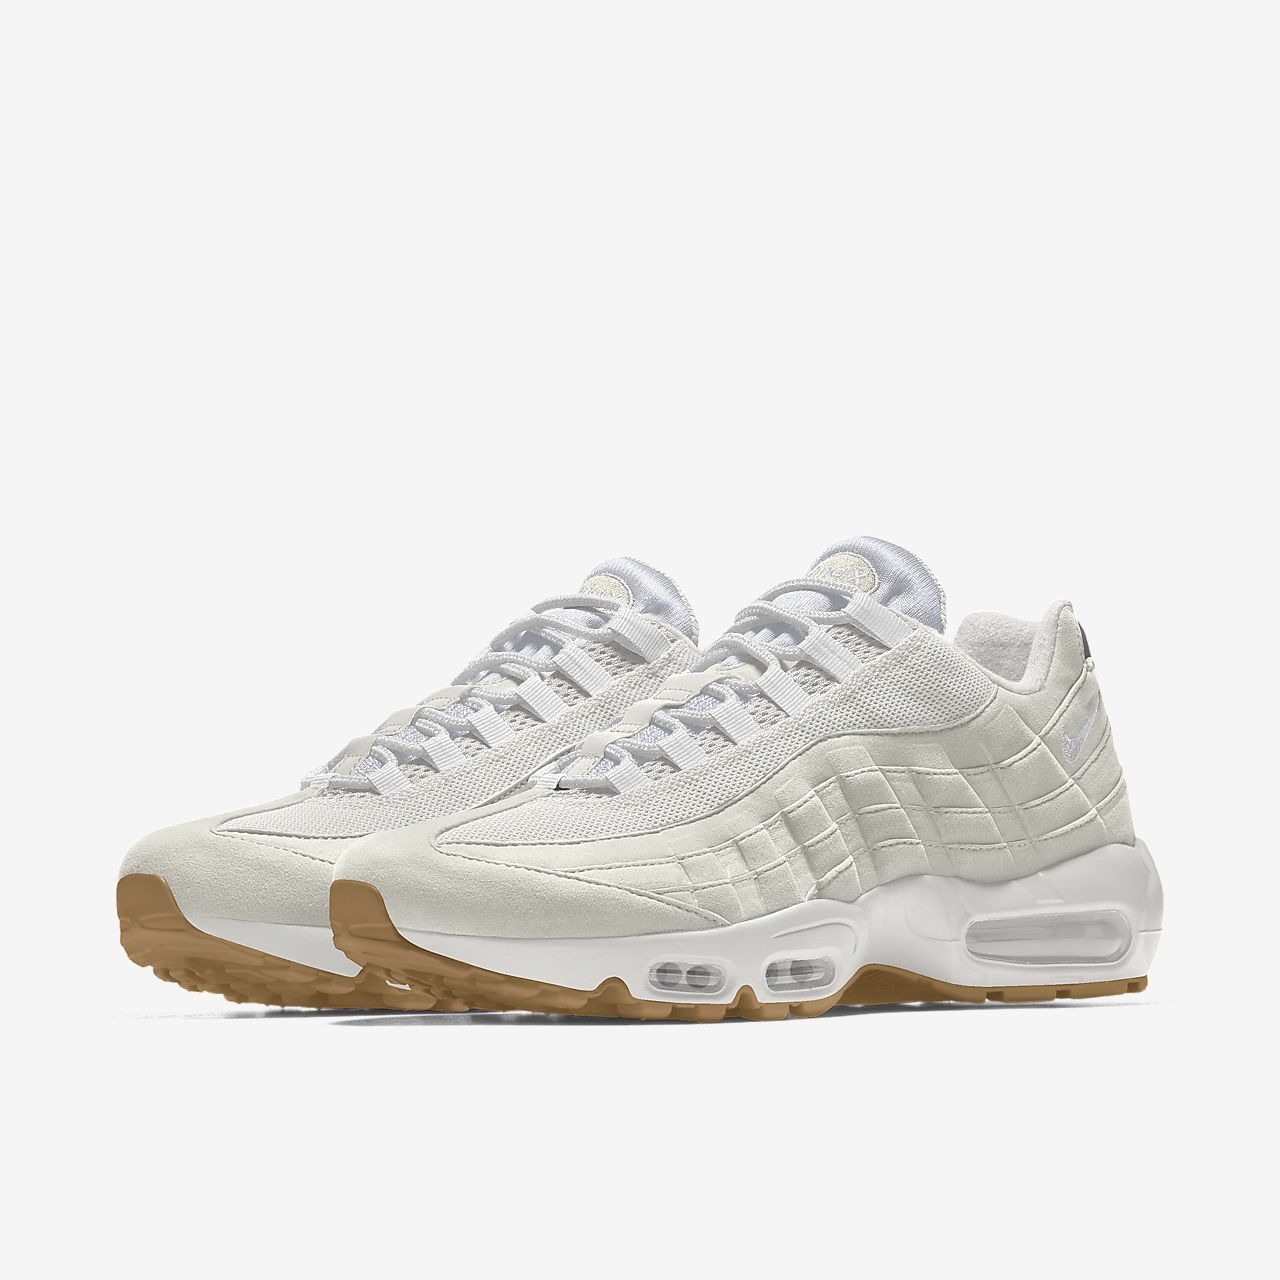 Chaussure personnalisable Nike Air Max 95 By You pour Femme